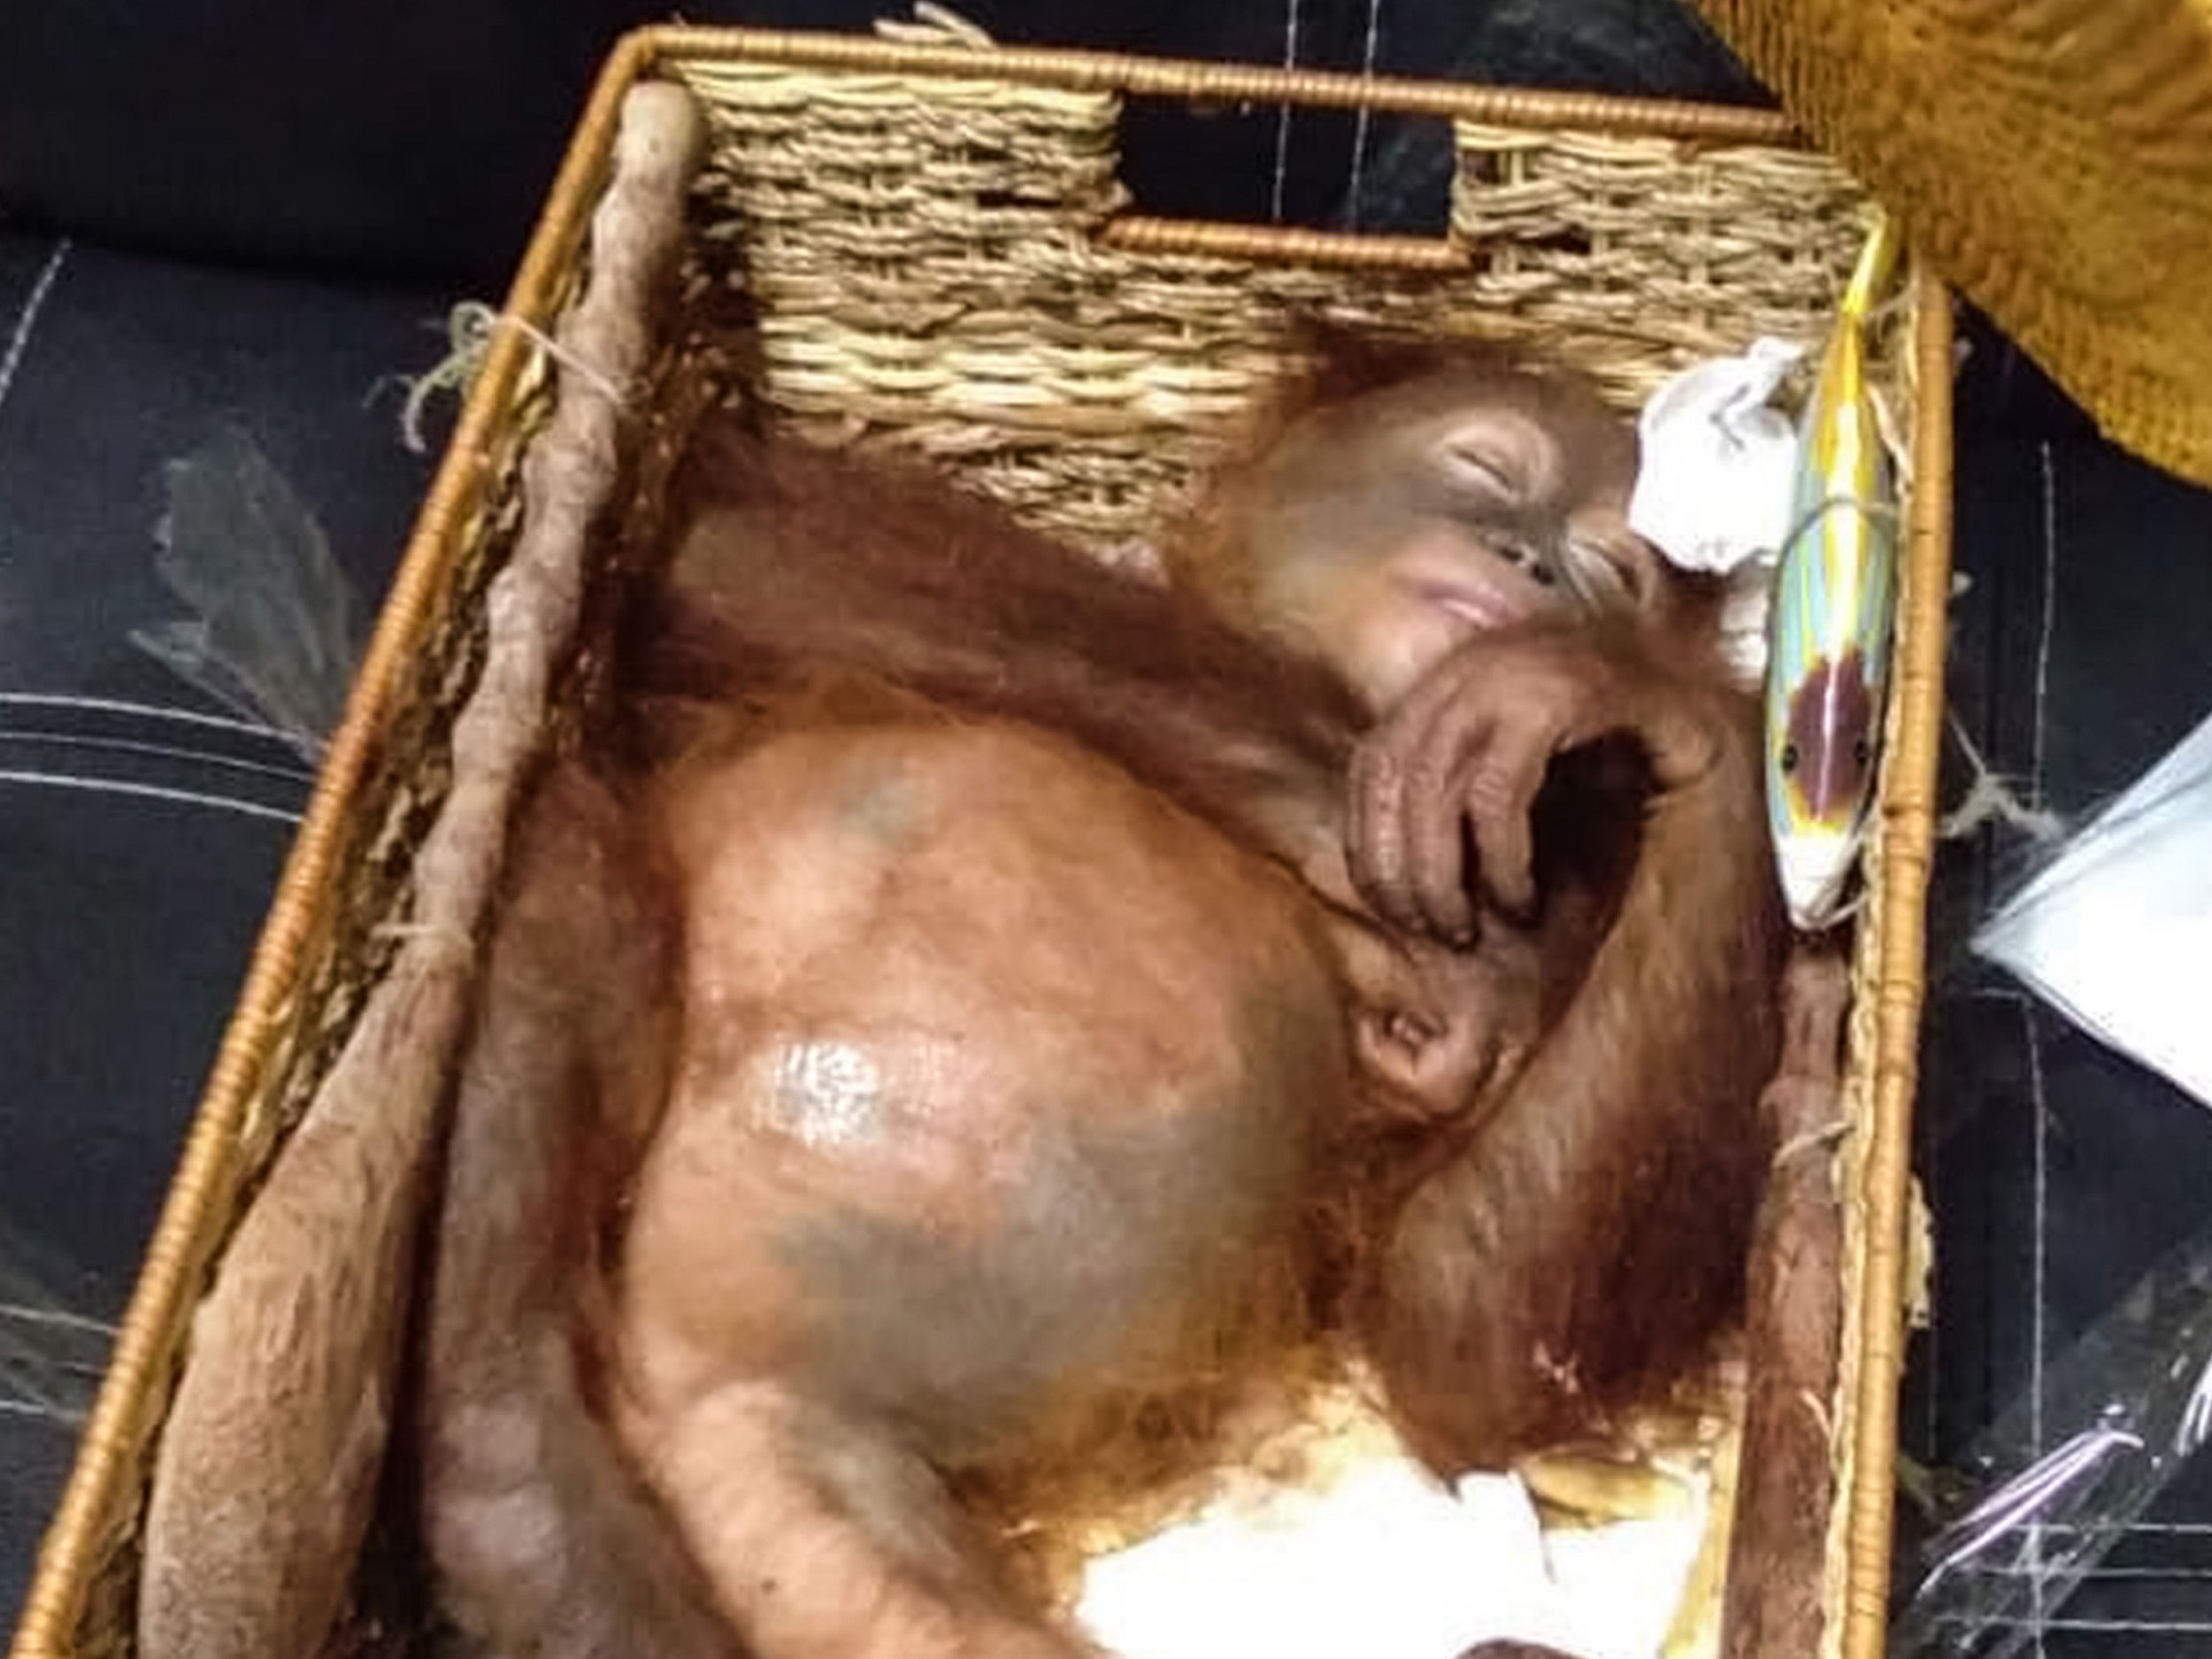 "This handout picture taken and released on March 23, 2019 by the Natural Resources Conservation Agency of Bali shows a rescued two-year-old orangutan resting inside a rattan basket, after a smuggling attempt by a Russian tourist at Bali's international airport in Denpasar. - Indonesian authorities on March 22 arrested a Russian tourist for attempting to smuggle an orangutan out of the country in his suitcase. (Photo by Handout / Natural Resources Conservation Agency of Bali / AFP) / RESTRICTED TO EDITORIAL USE - MANDATORY CREDIT ""AFP PHOTO / NATURAL RESOURCES CONSERVATION AGENCY OF BALI"" - NO MARKETING NO ADVERTISING CAMPAIGNS - DISTRIBUTED AS A SERVICE TO CLIENTSHANDOUT/AFP/Getty Images"